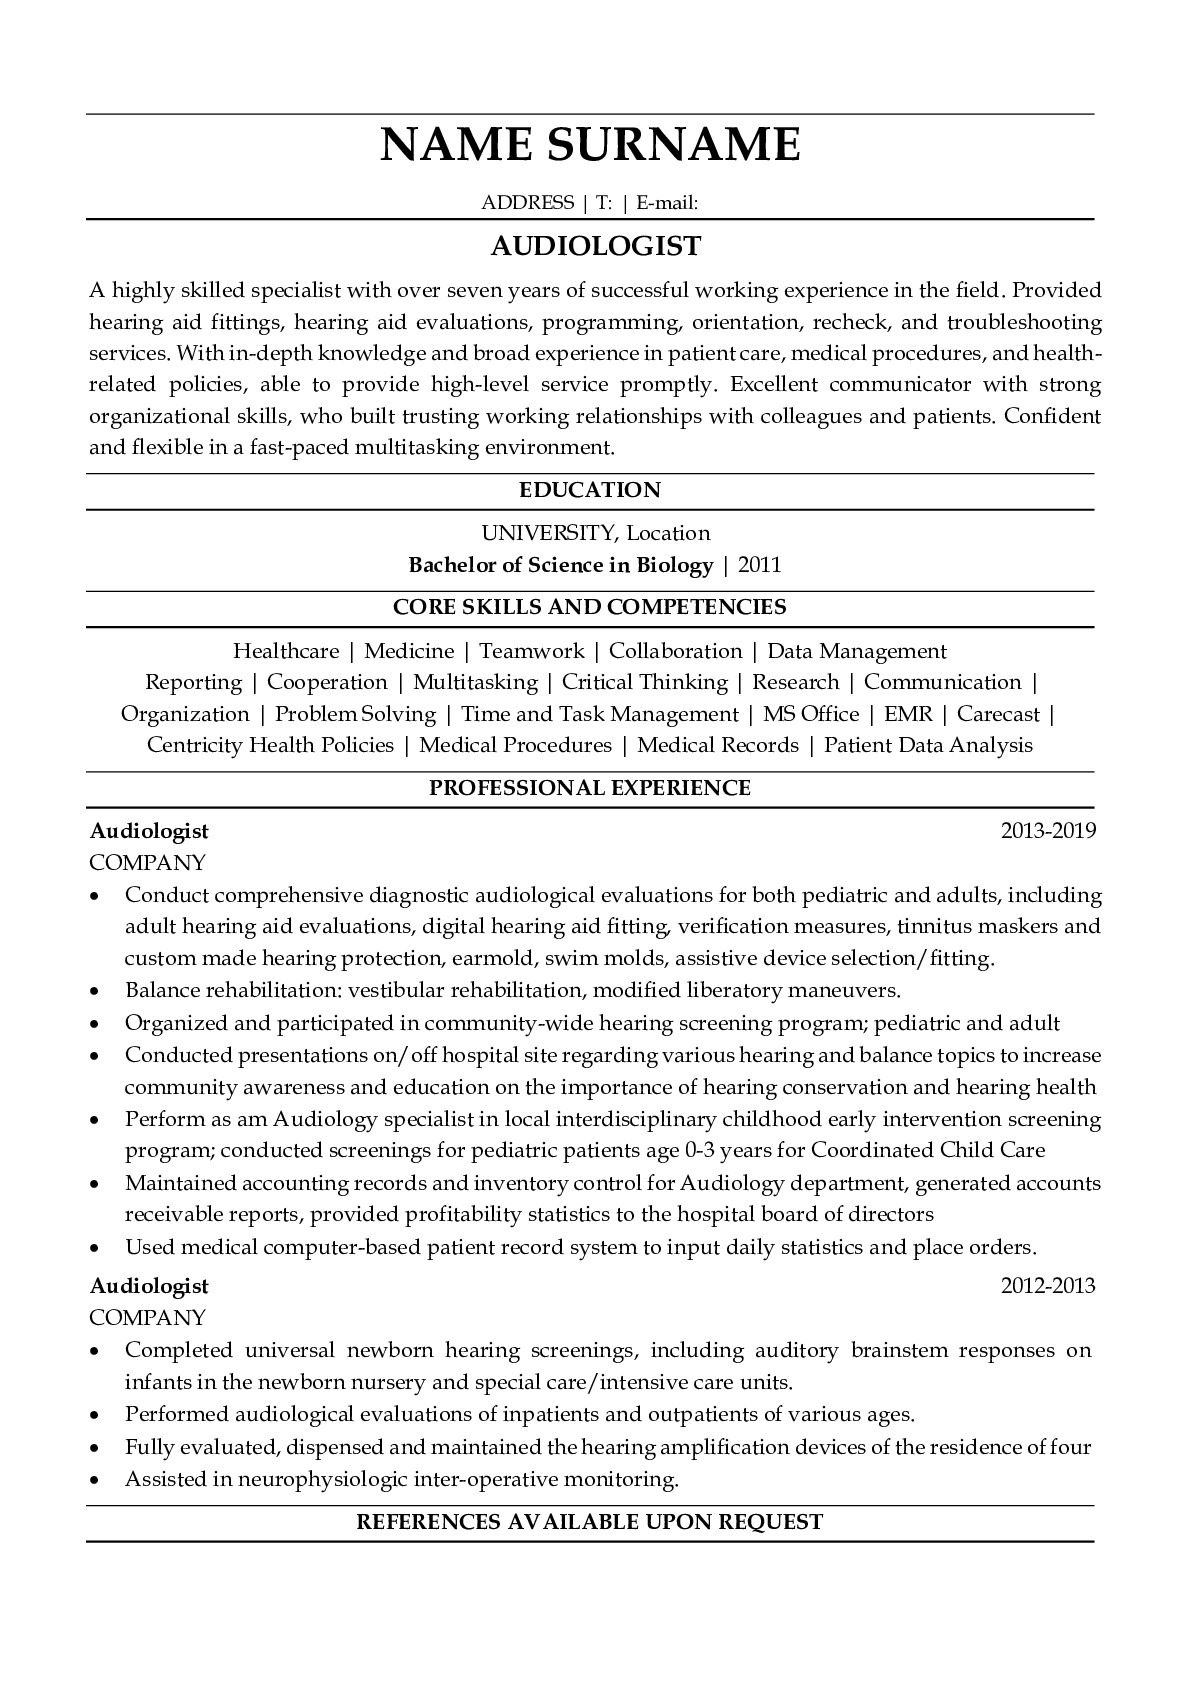 Resume Example for Audiologist